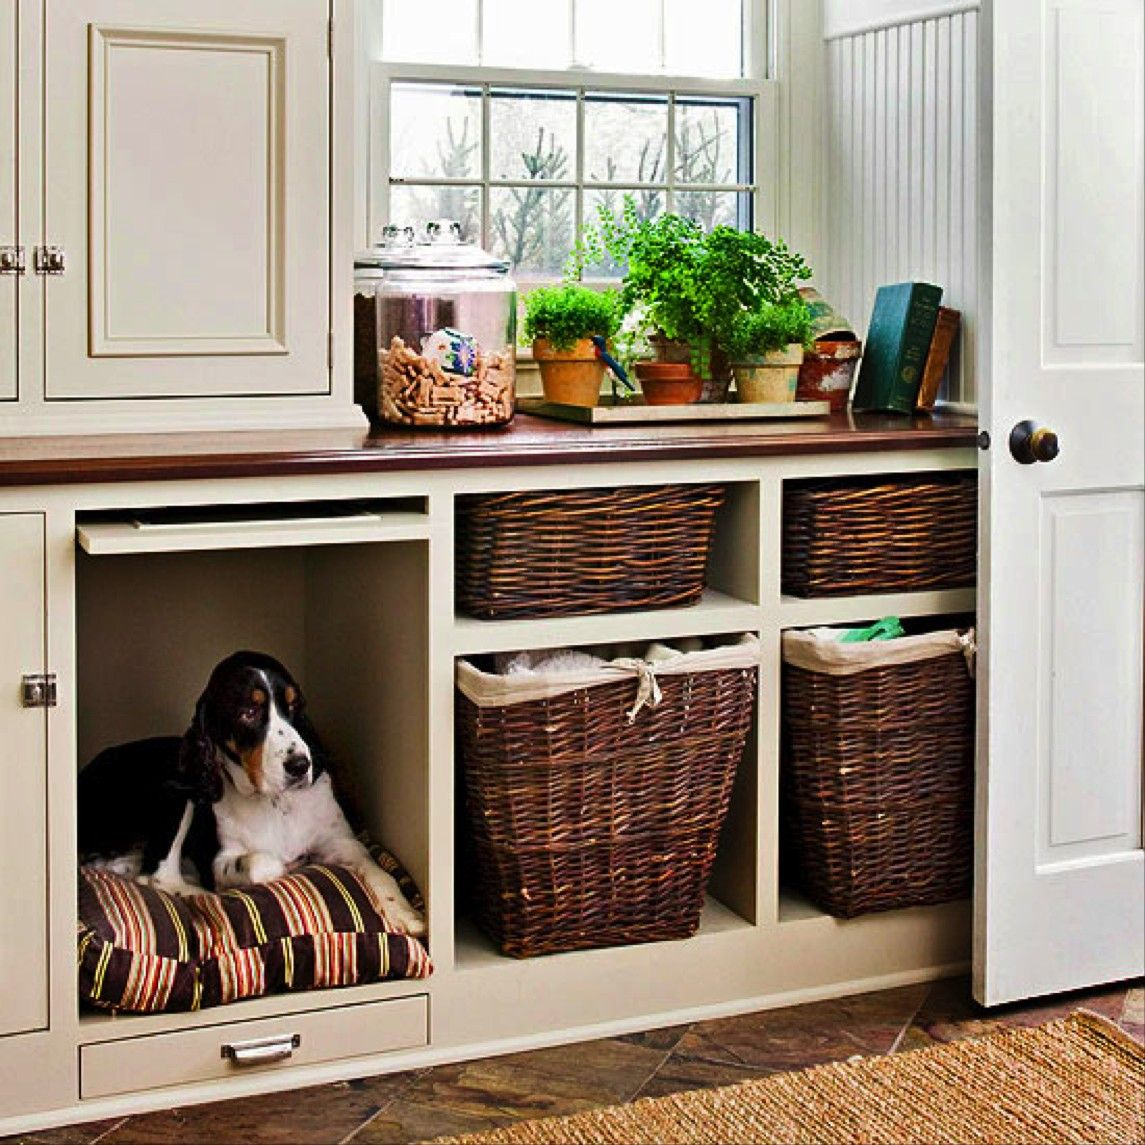 used-closet +80 Adorable Dog Bed Designs That Will Surprise You